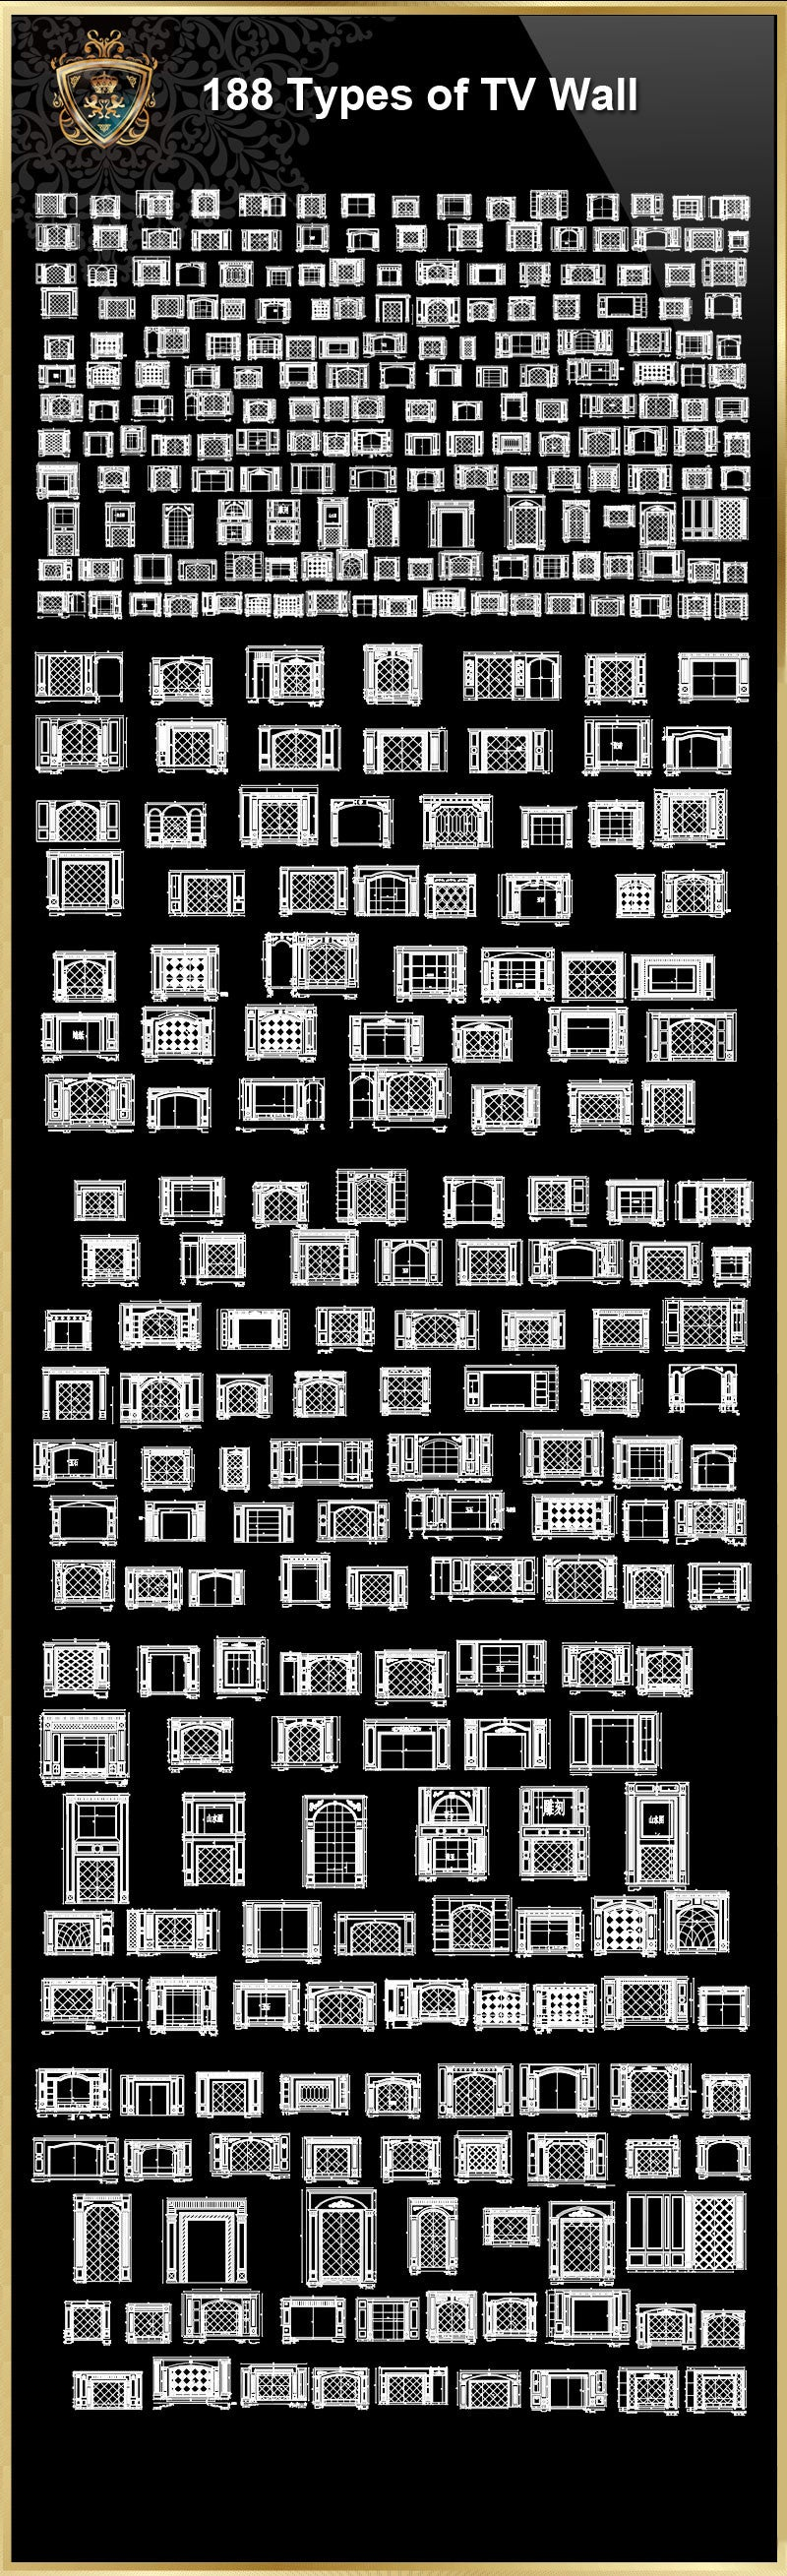 188 types of tv wall design cad drawings living room bedroom design